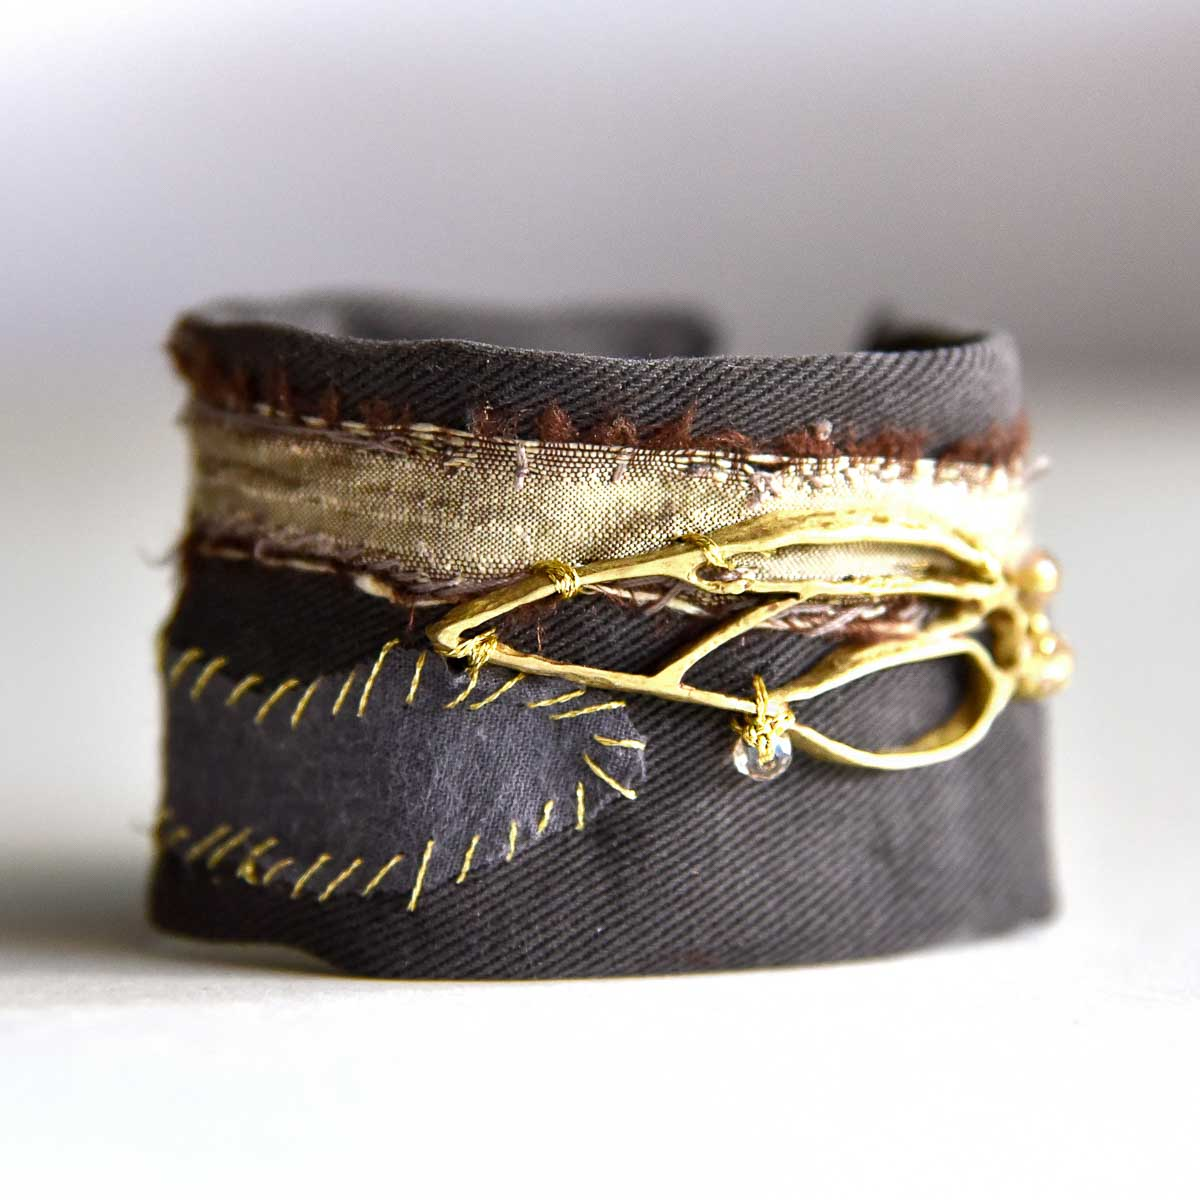 Bracelet with bronze handmade charm and recycled fabric. Made for Bead A Boo Jewelry by Katerina Glinou.